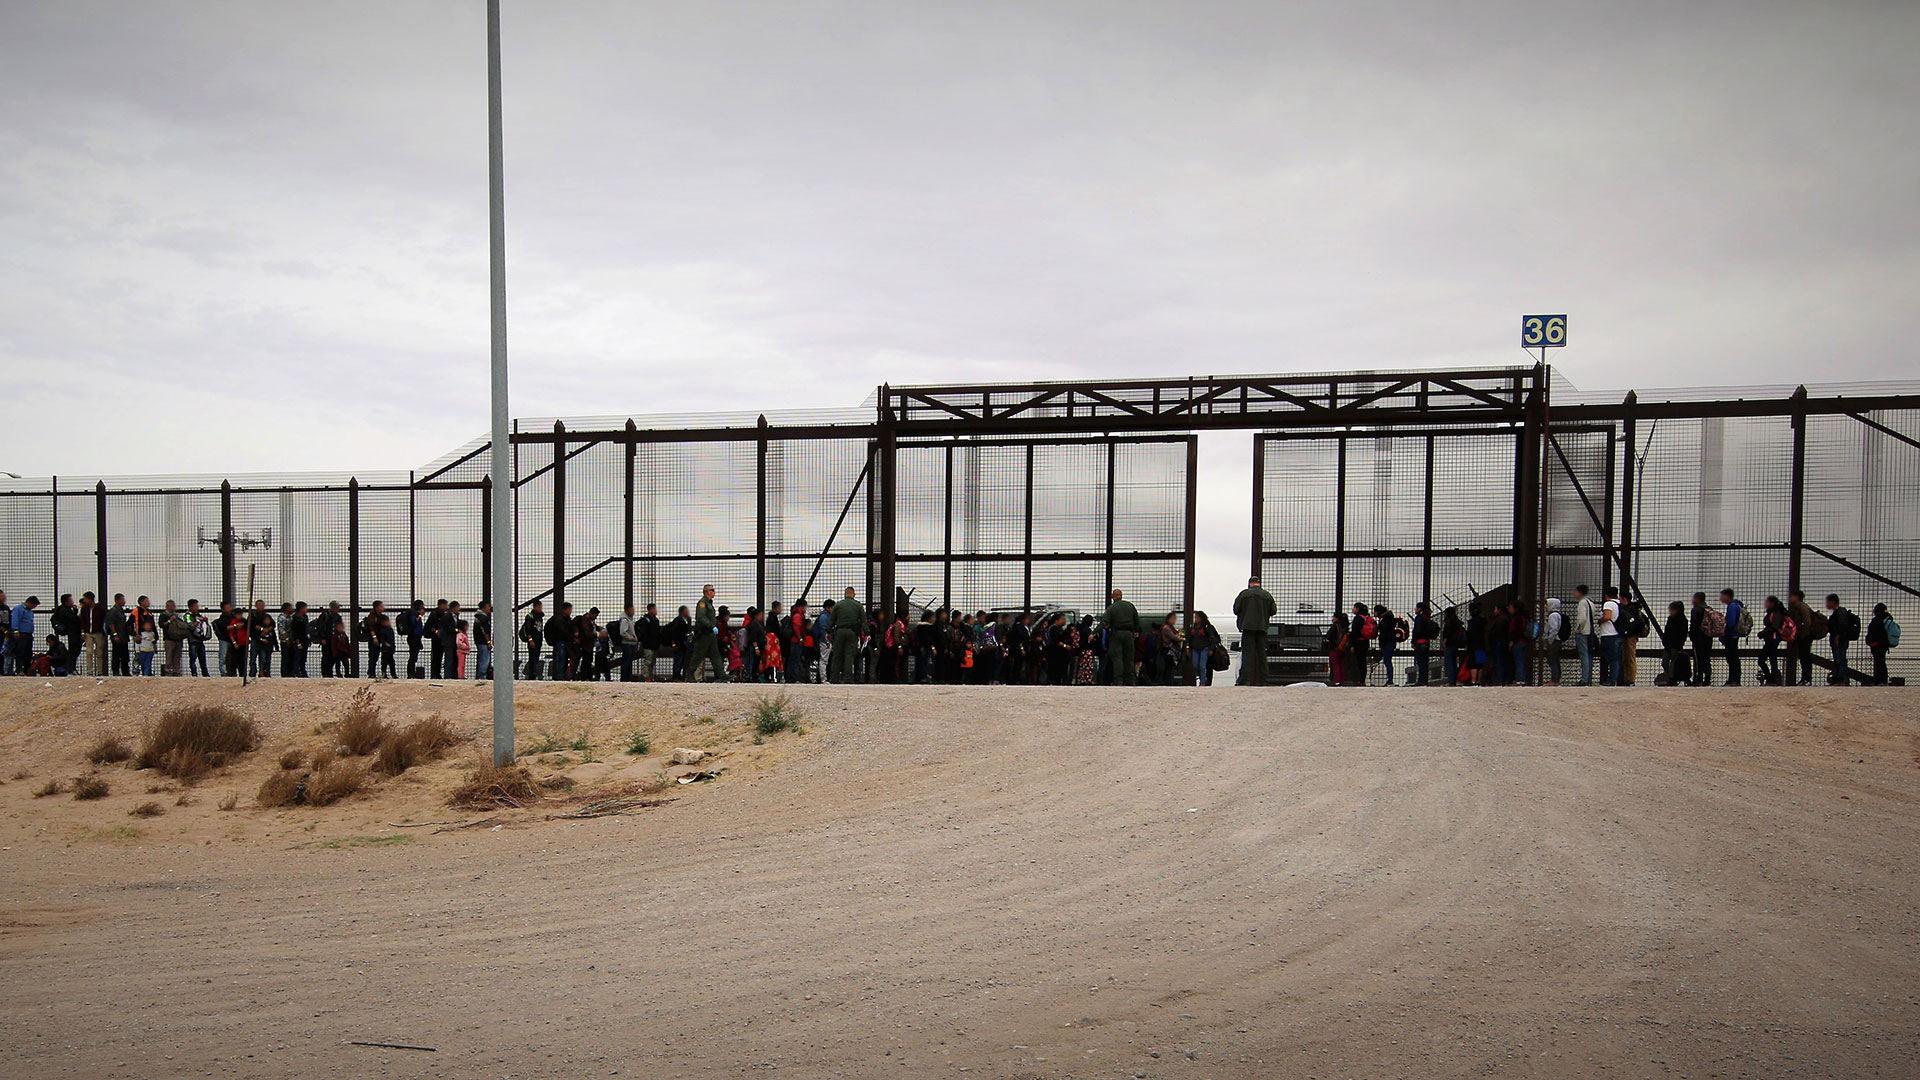 This March 7, 2019 Customs and Border Protection photo shows a group of more than 100 migrants lined up at the border in the El Paso Sector.